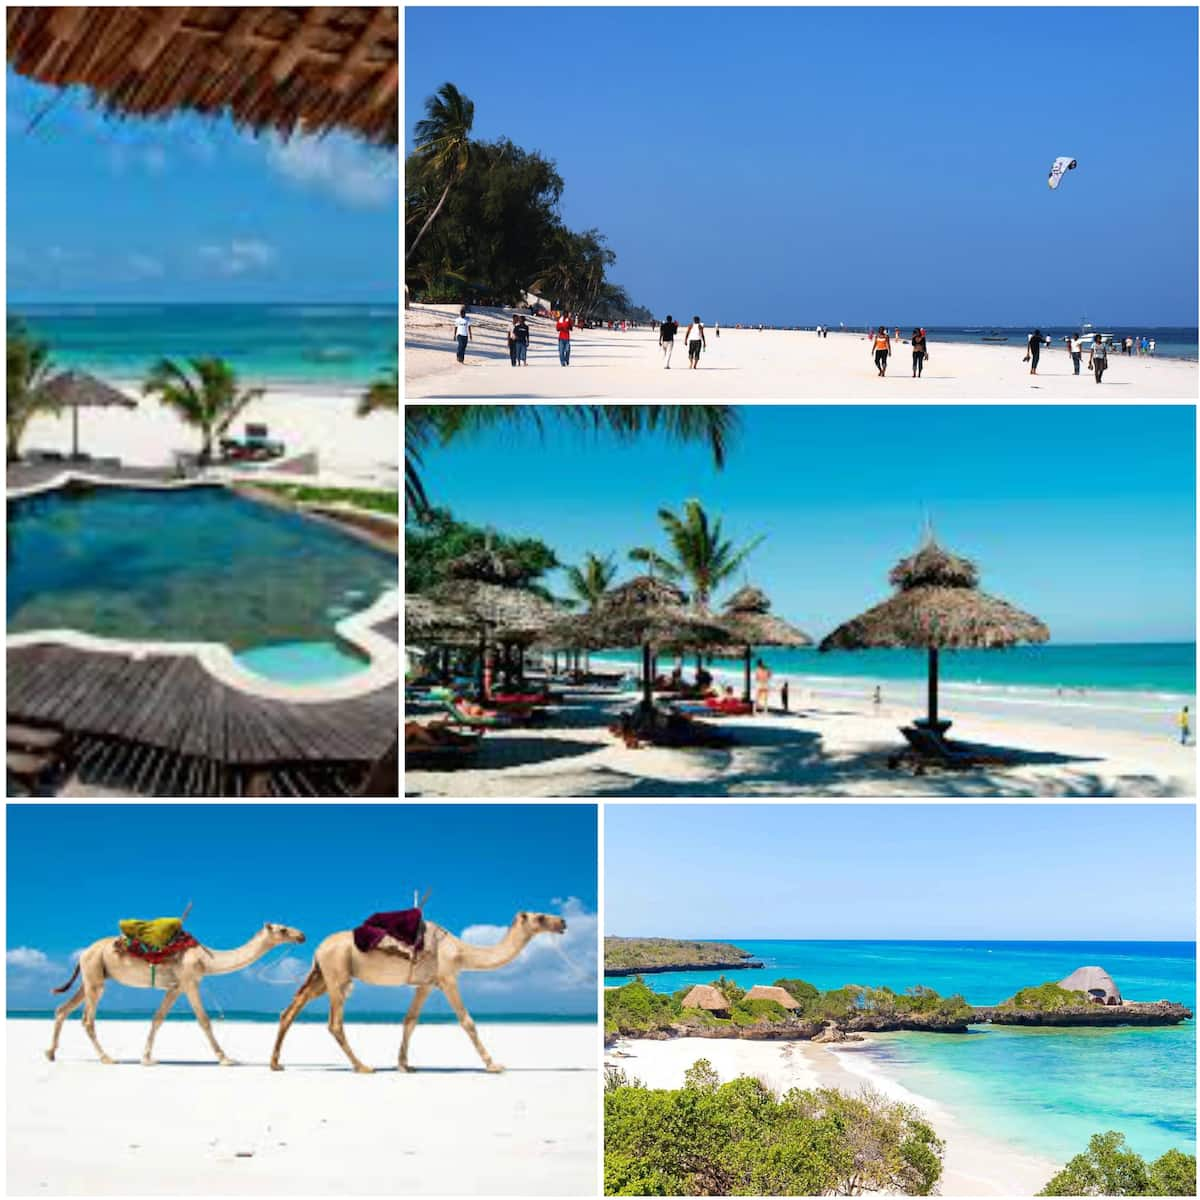 Tourist attractions in Mombasa